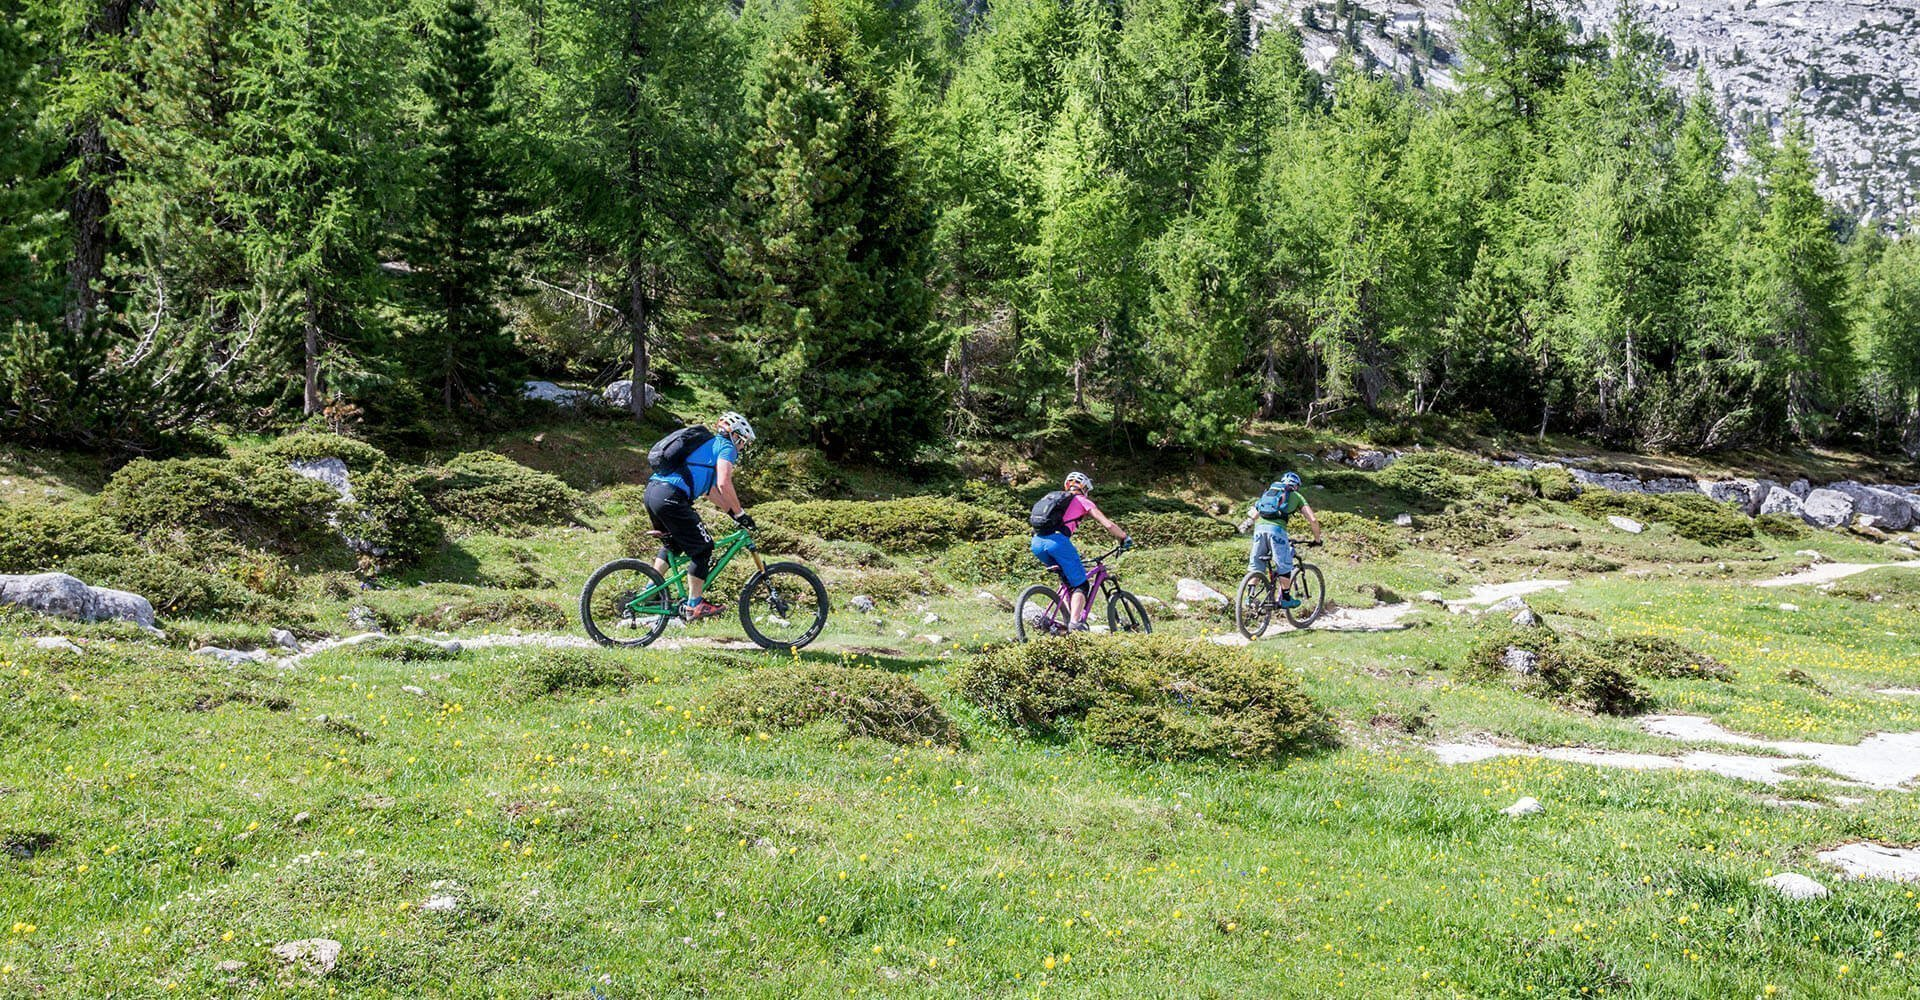 Hotel Kristall | Wanderurlaub in Meransen | Nordic Walking & Mountainbike